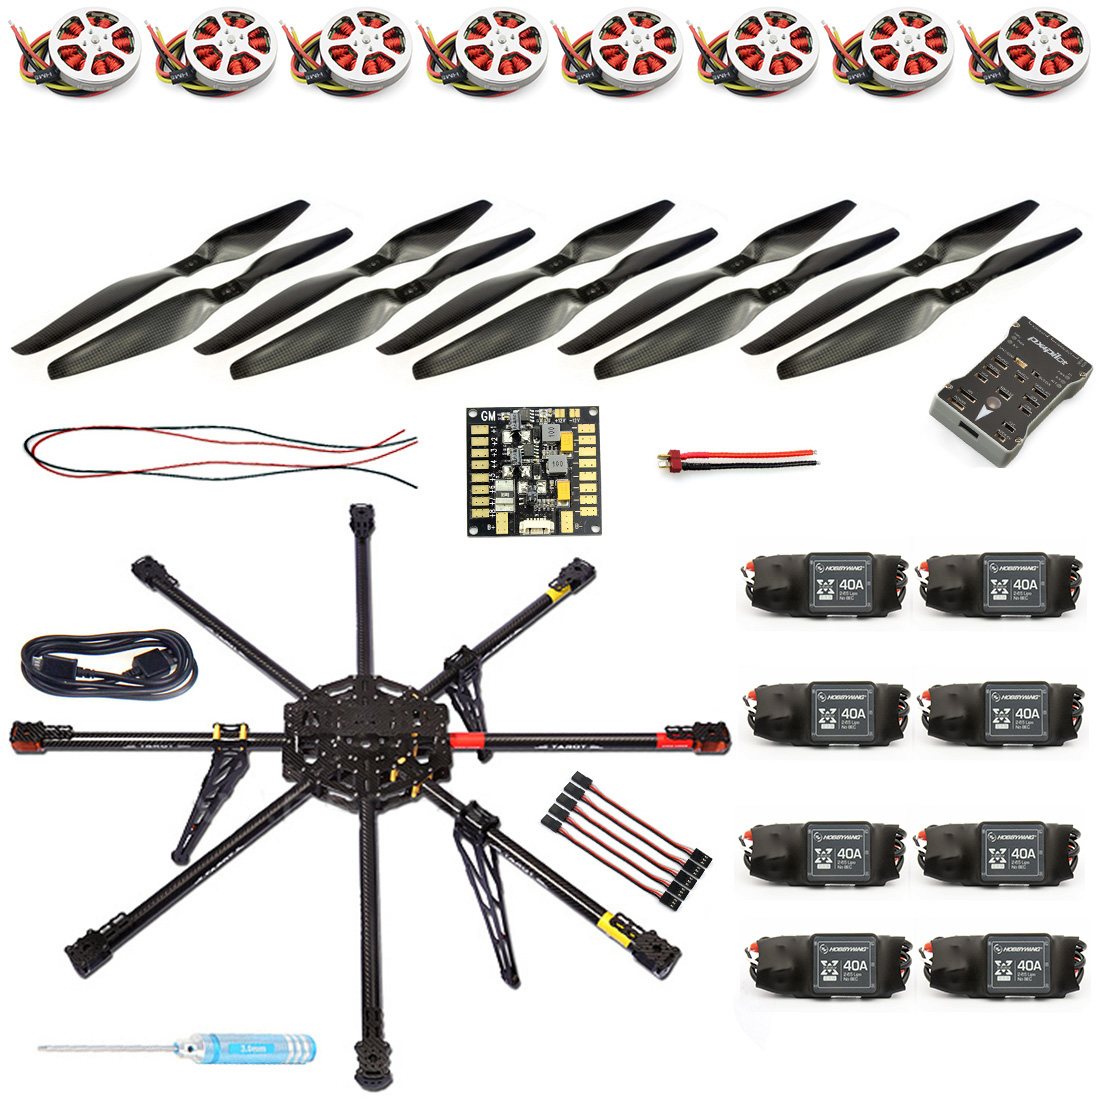 JMT DIY 8-Axle Unassembled RC Drone 1000mm Carbon Octocopter PX4 PIX M8N GPS RC Drone PNF Kit No Remote Battery FPV F04765-B f04305 sim900 gprs gsm development board kit quad band module for diy rc quadcopter drone fpv